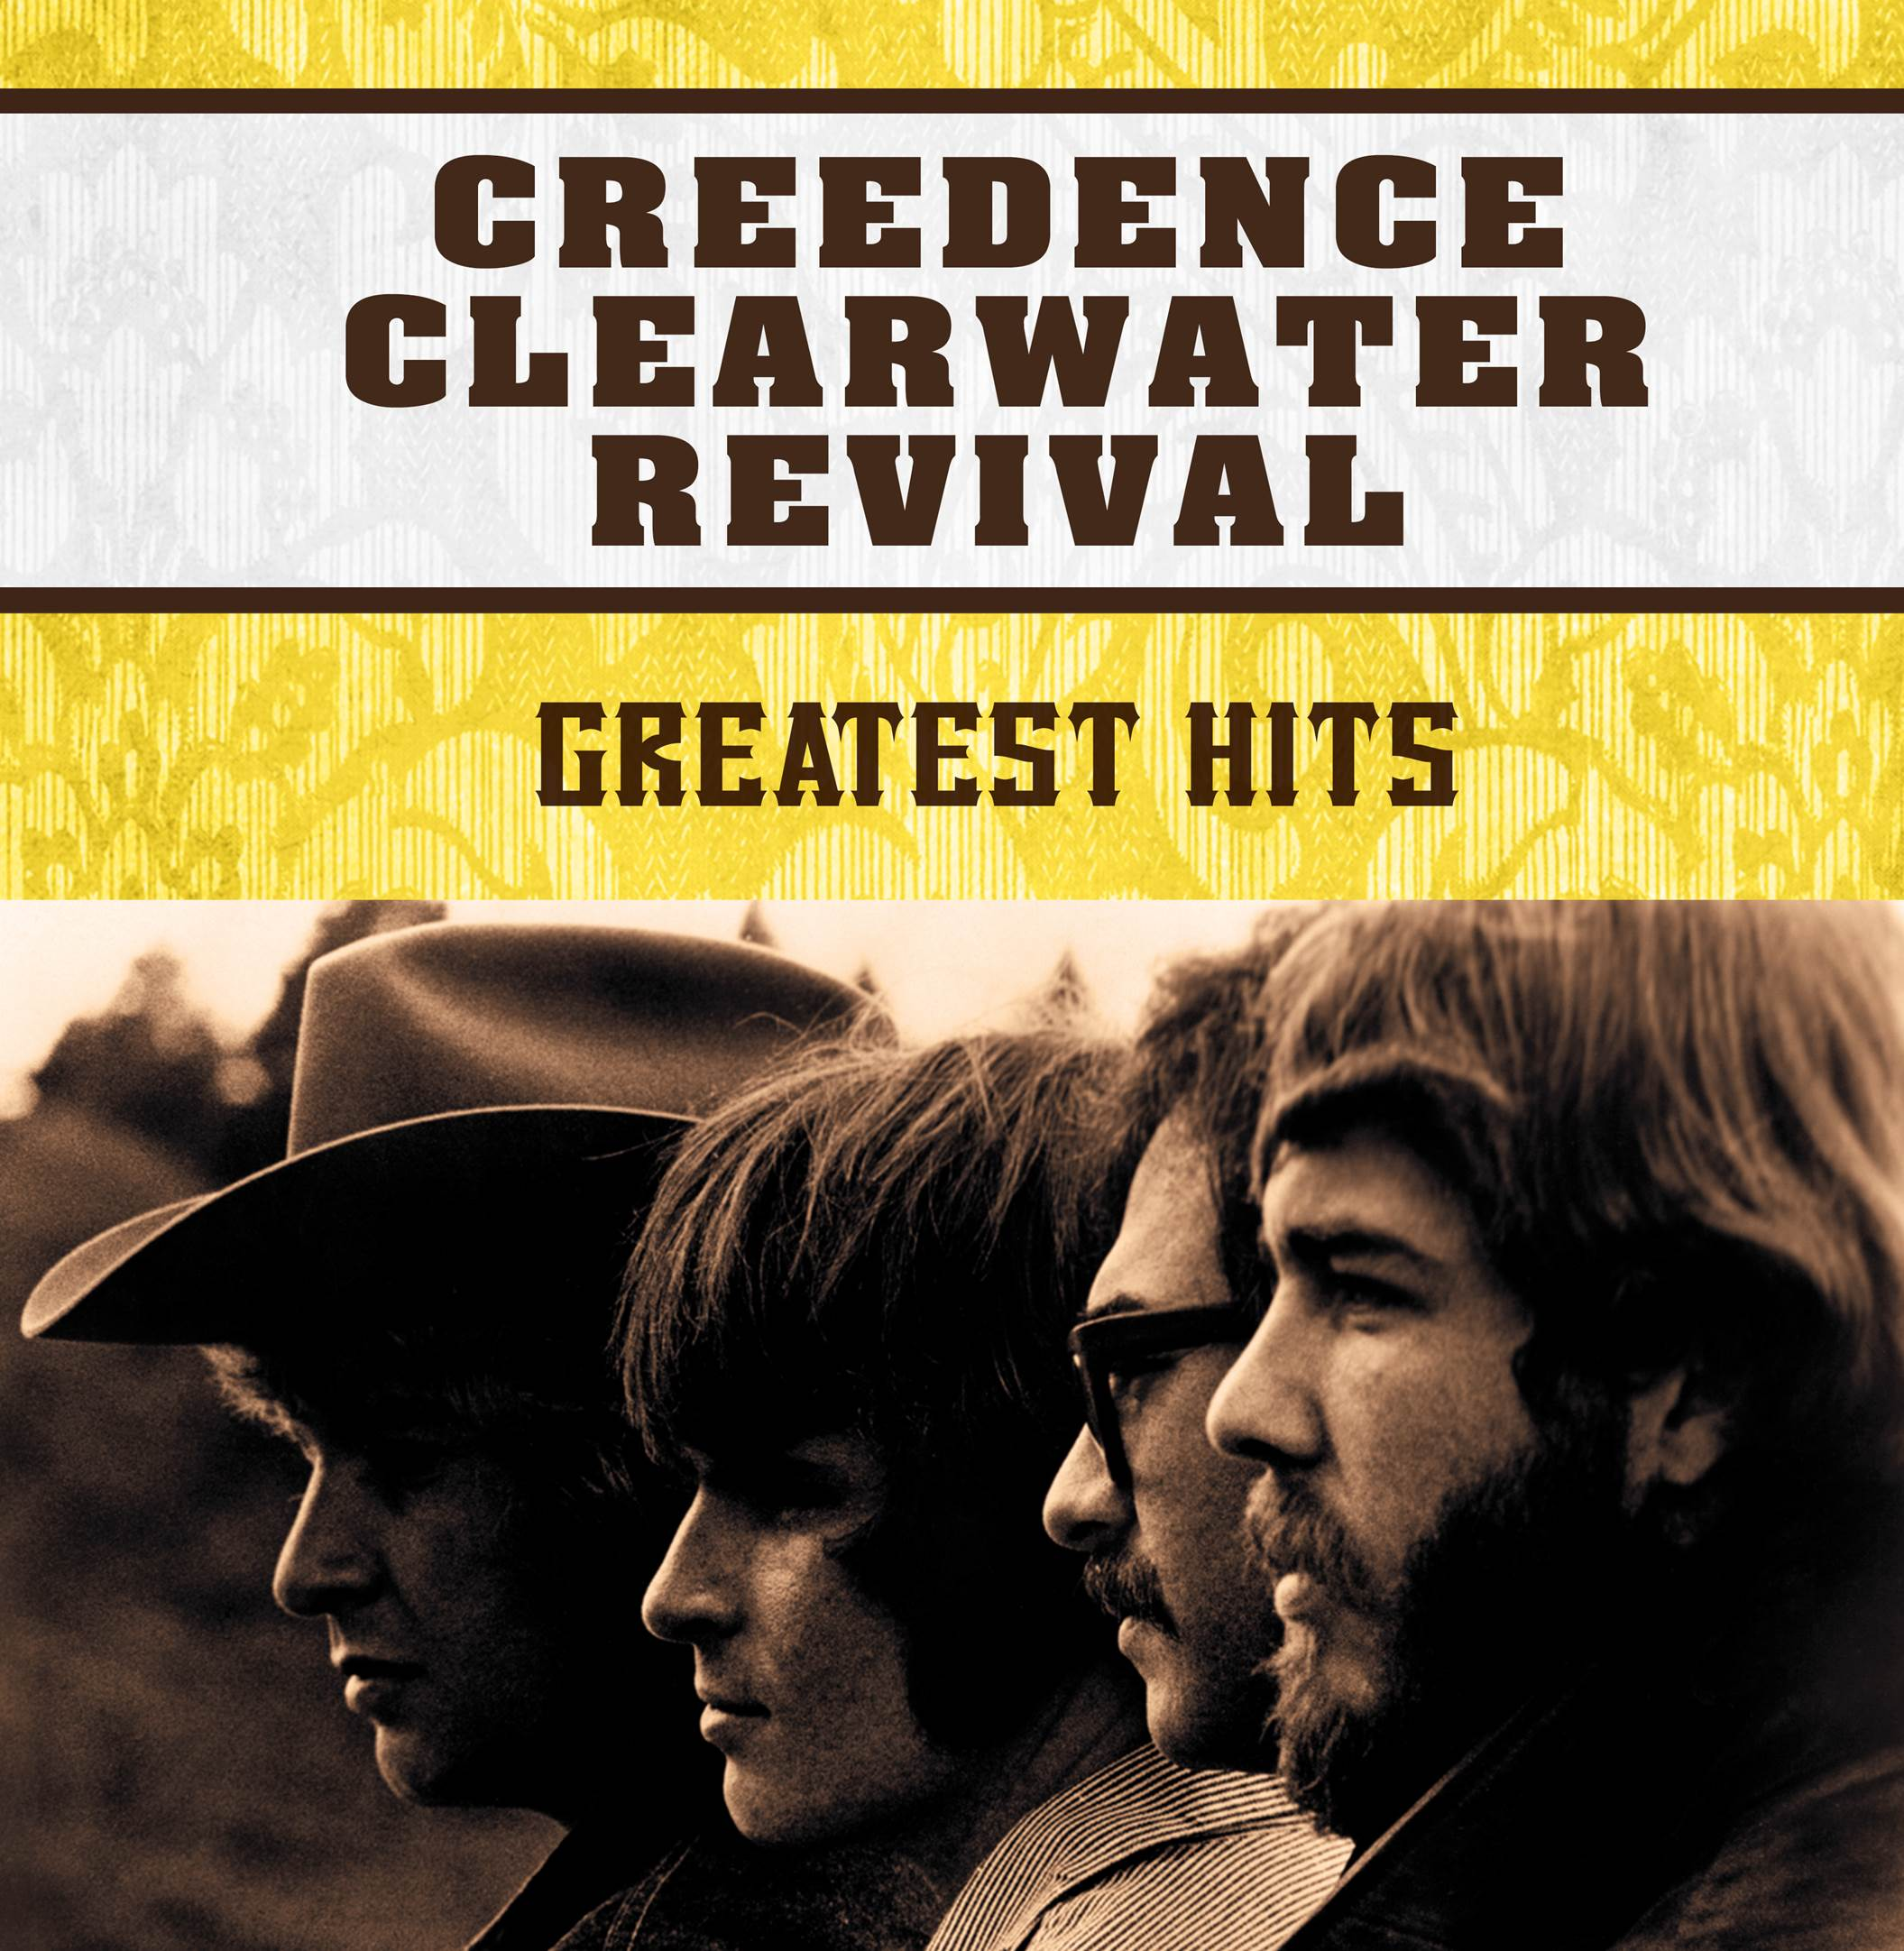 Kaufe Creedence Clearwater Revival   Greatest Hits   CD